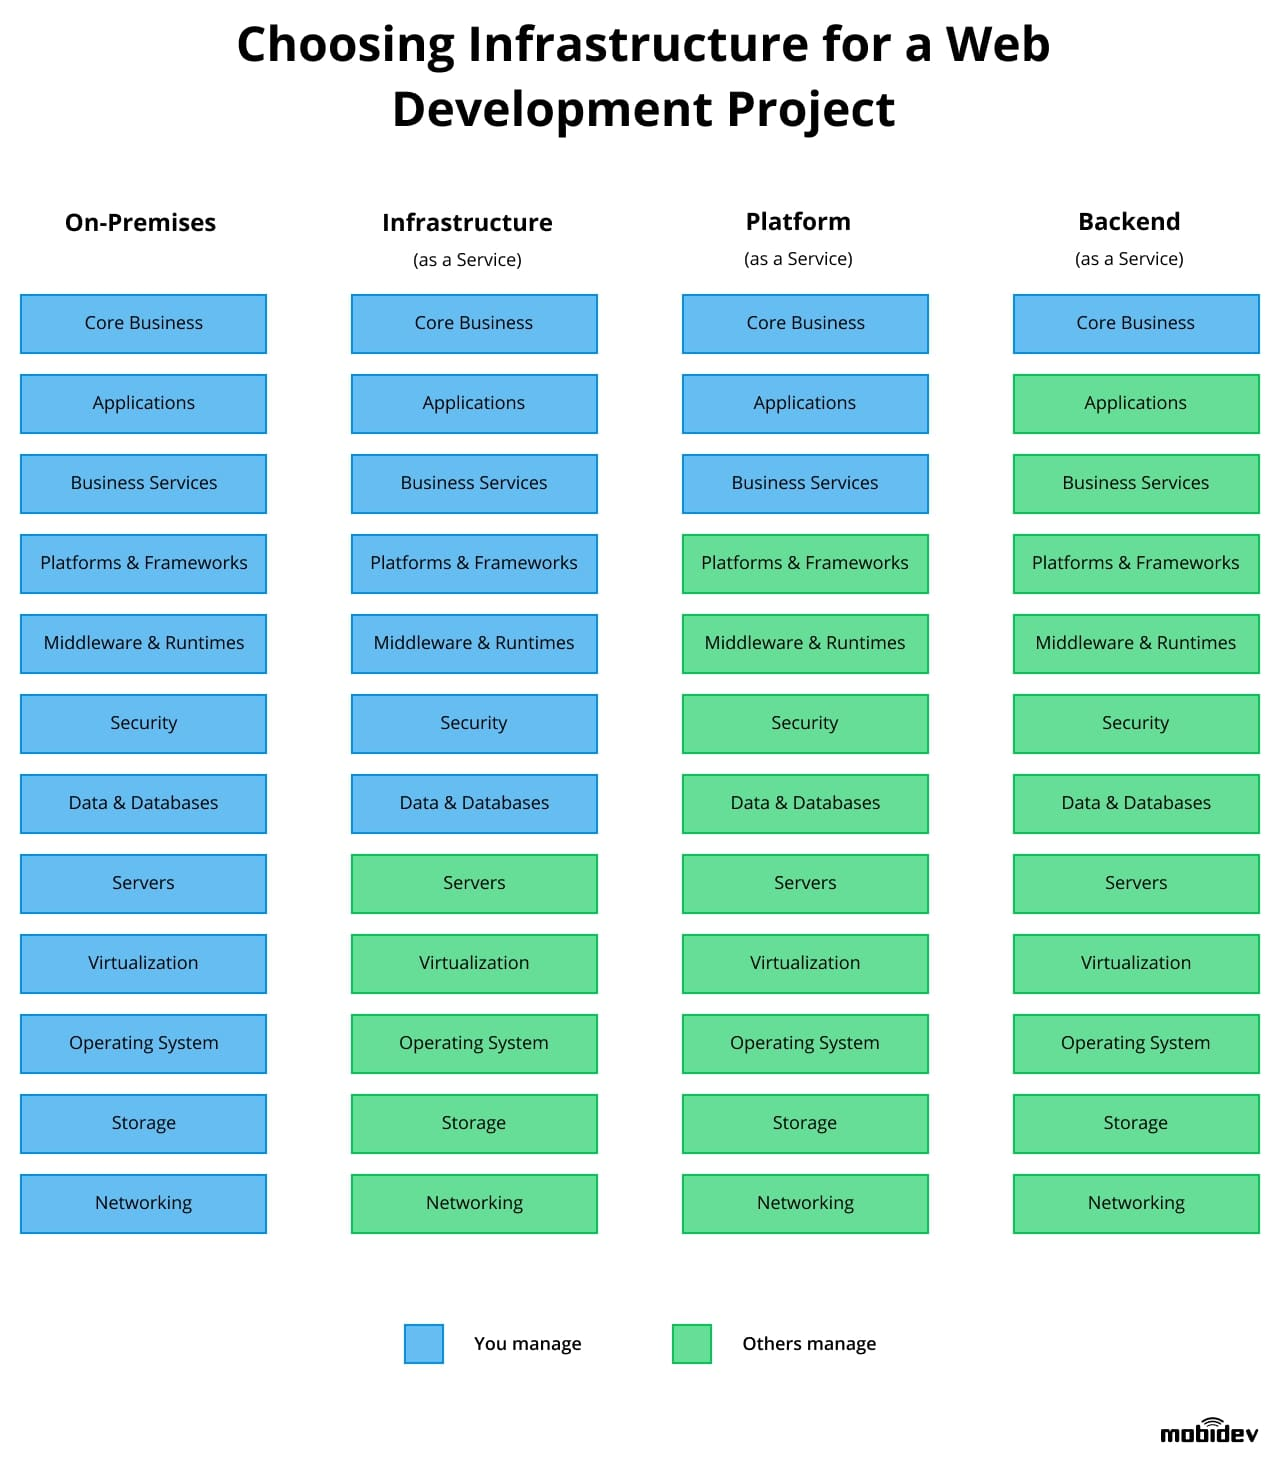 Choosing infrastructure for a web development project